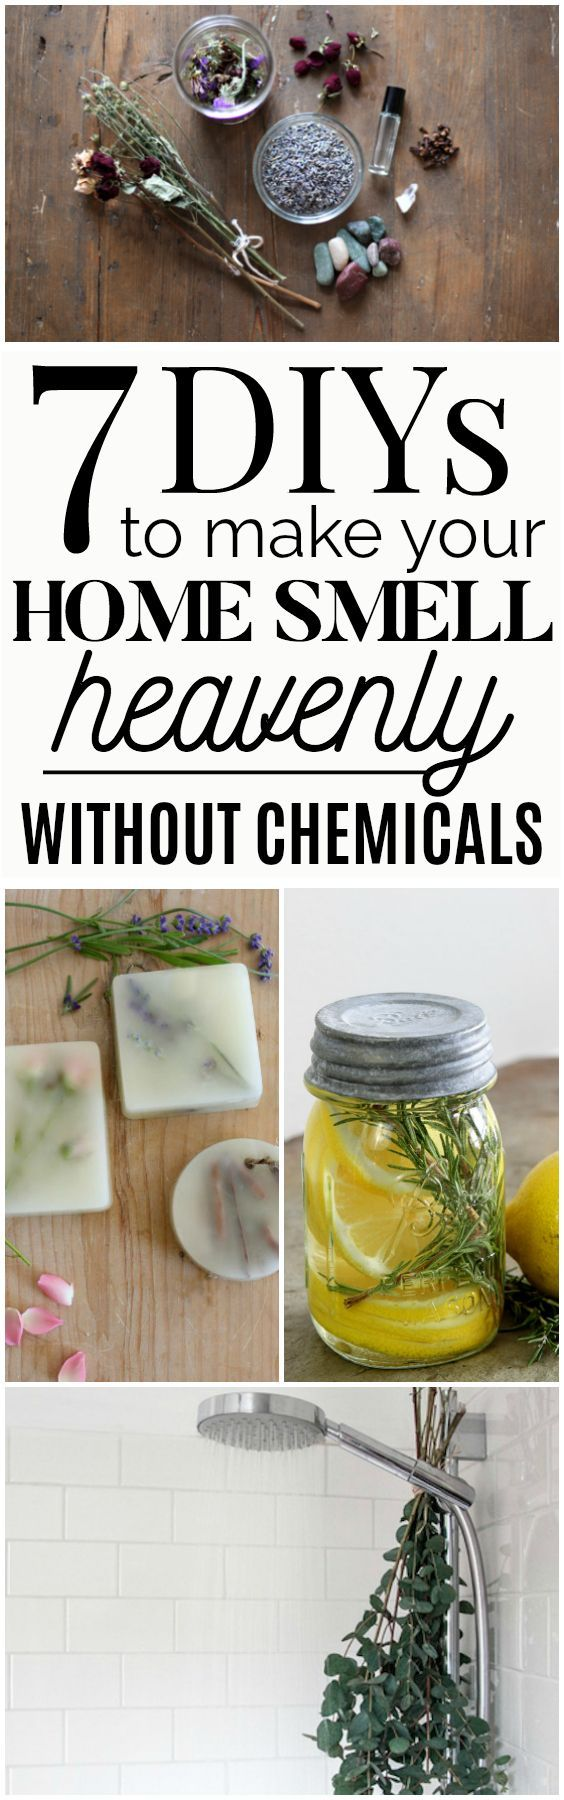 7 DIY Natural Ways to Make Your Home Smell Amazing House